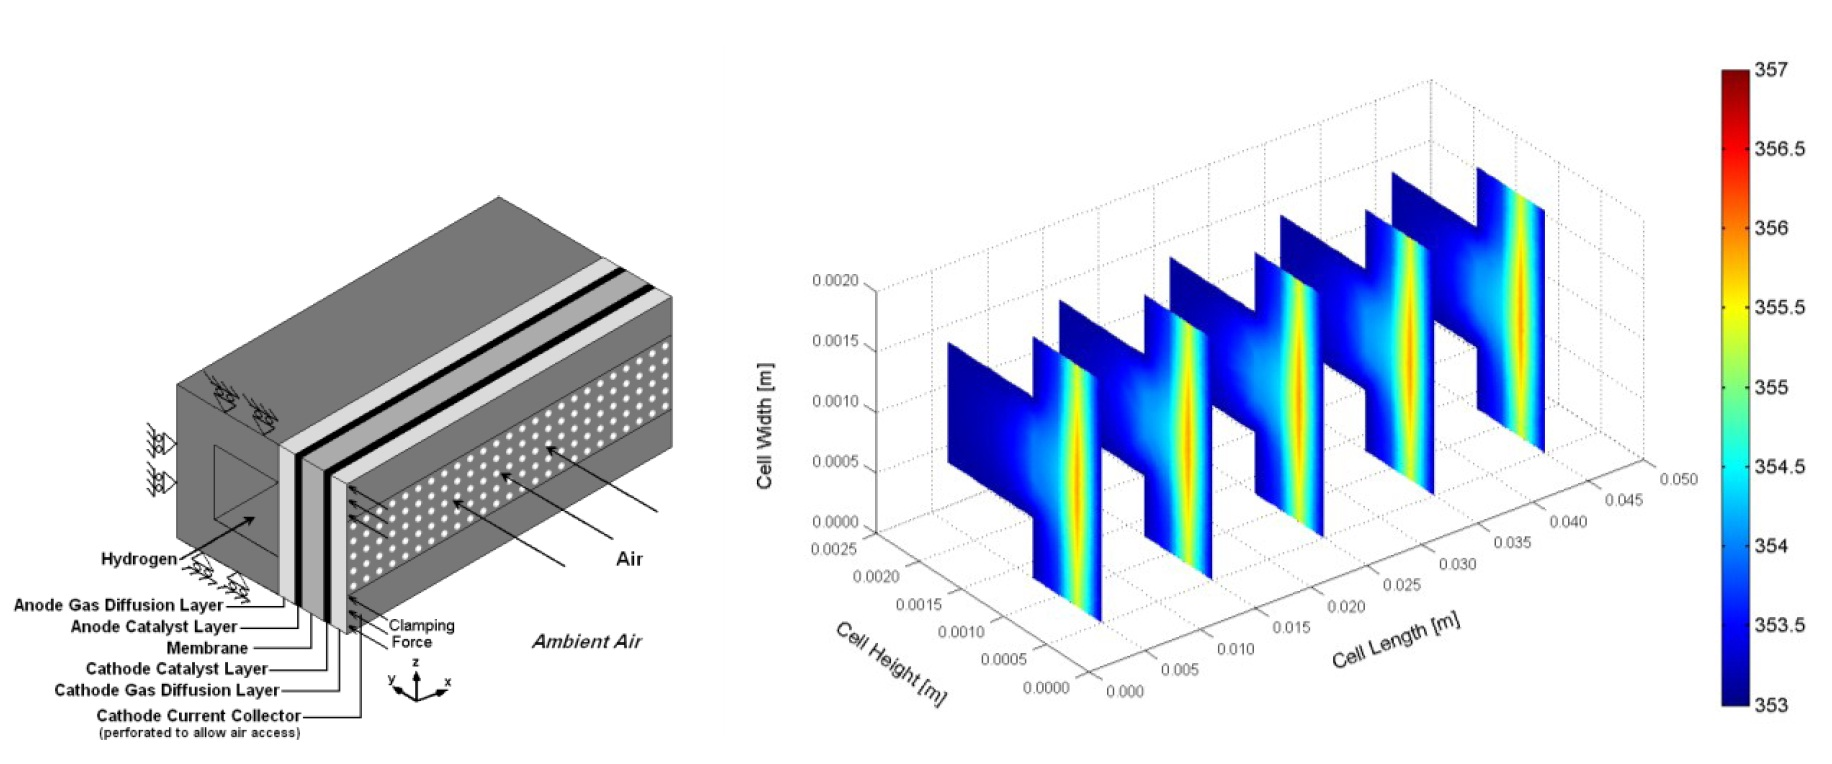 Figure 7. Three-dimensional computational domain of a planner ambient air-breathing PEM fuel cell and the temperature distribution inside the cell at nominal current density of 0.8 A/cm2 [18-21].